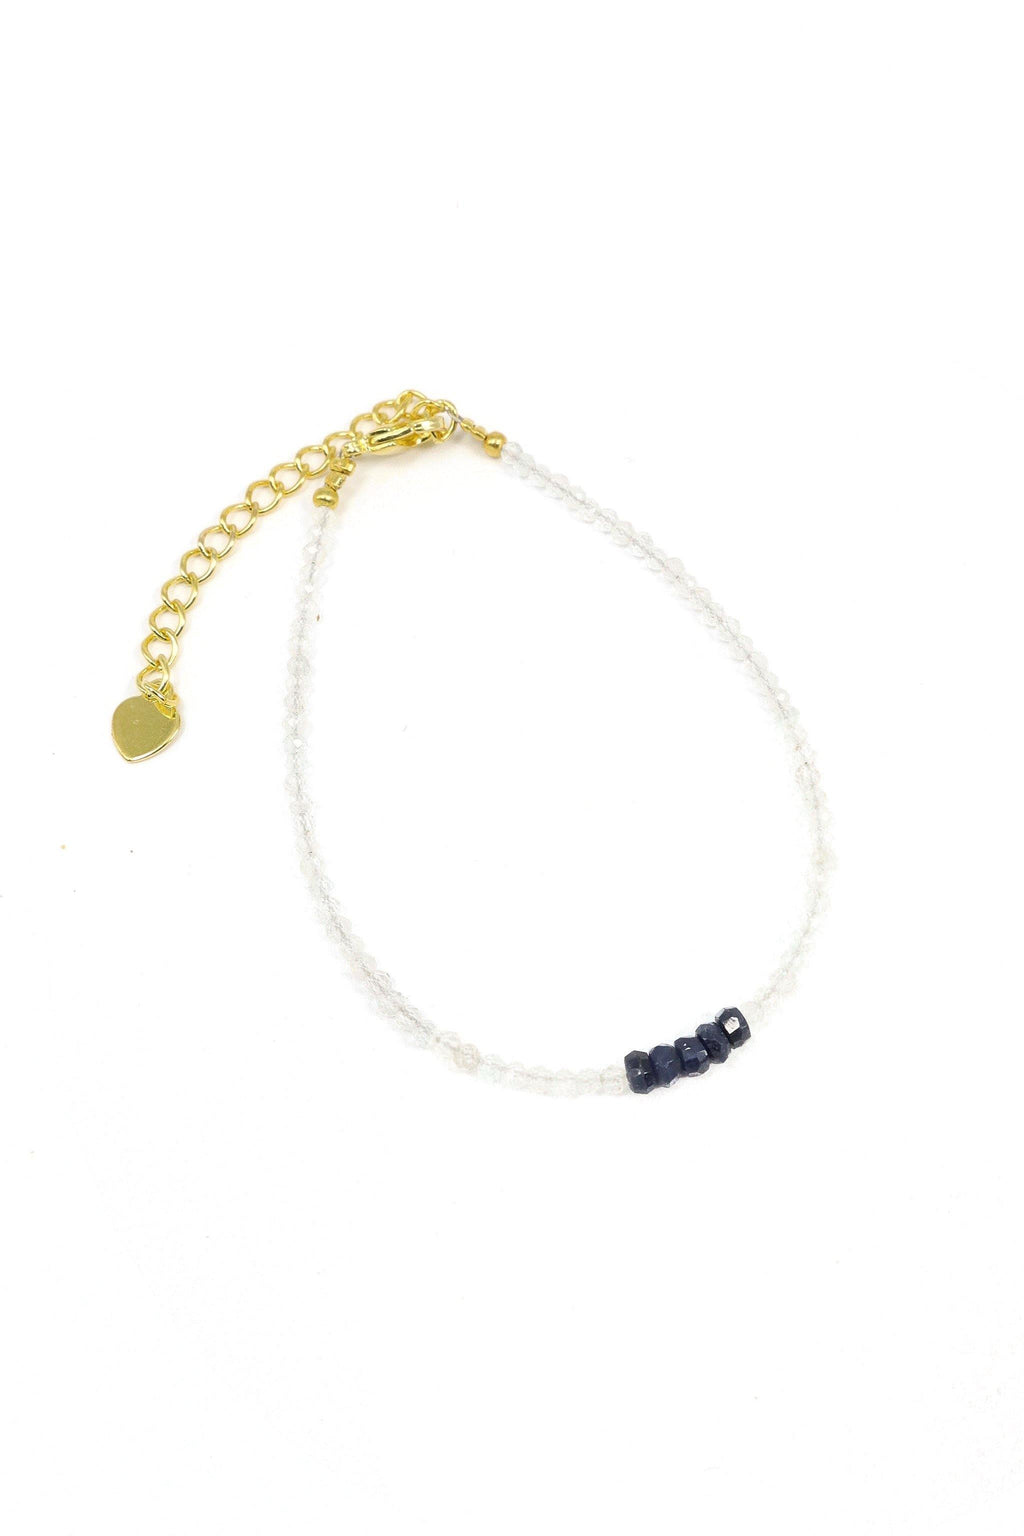 This is a dainty gemstone bracelet made with two tones. The moonstone is a 2mm faceted gemstone, and the sapphire is 3mm. The white subtlety with a center focus of Saphire. It is finished with and a sterling silver clasp.